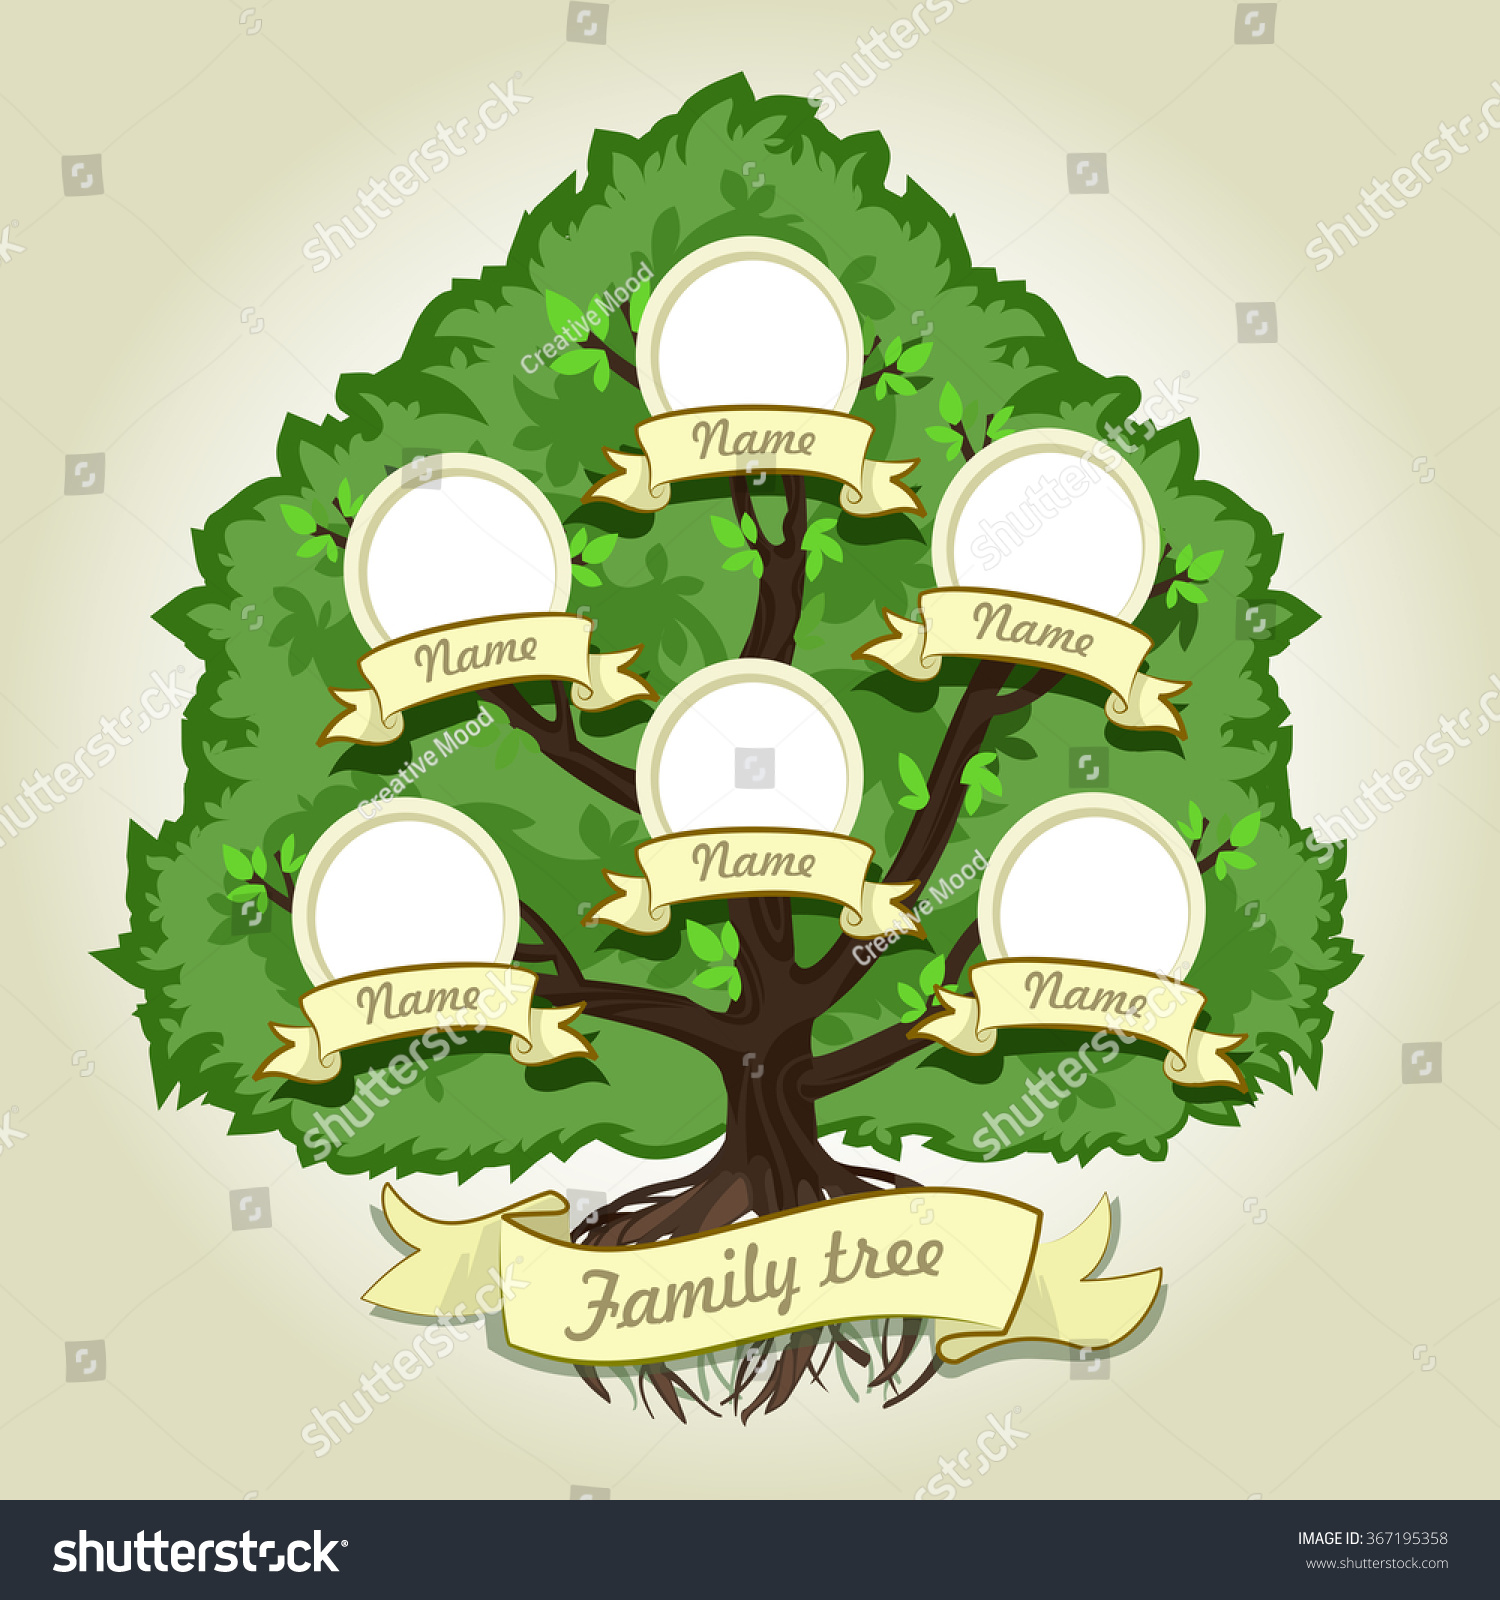 Genealogical family tree on gray background stock vector - Family tree desktop wallpaper ...